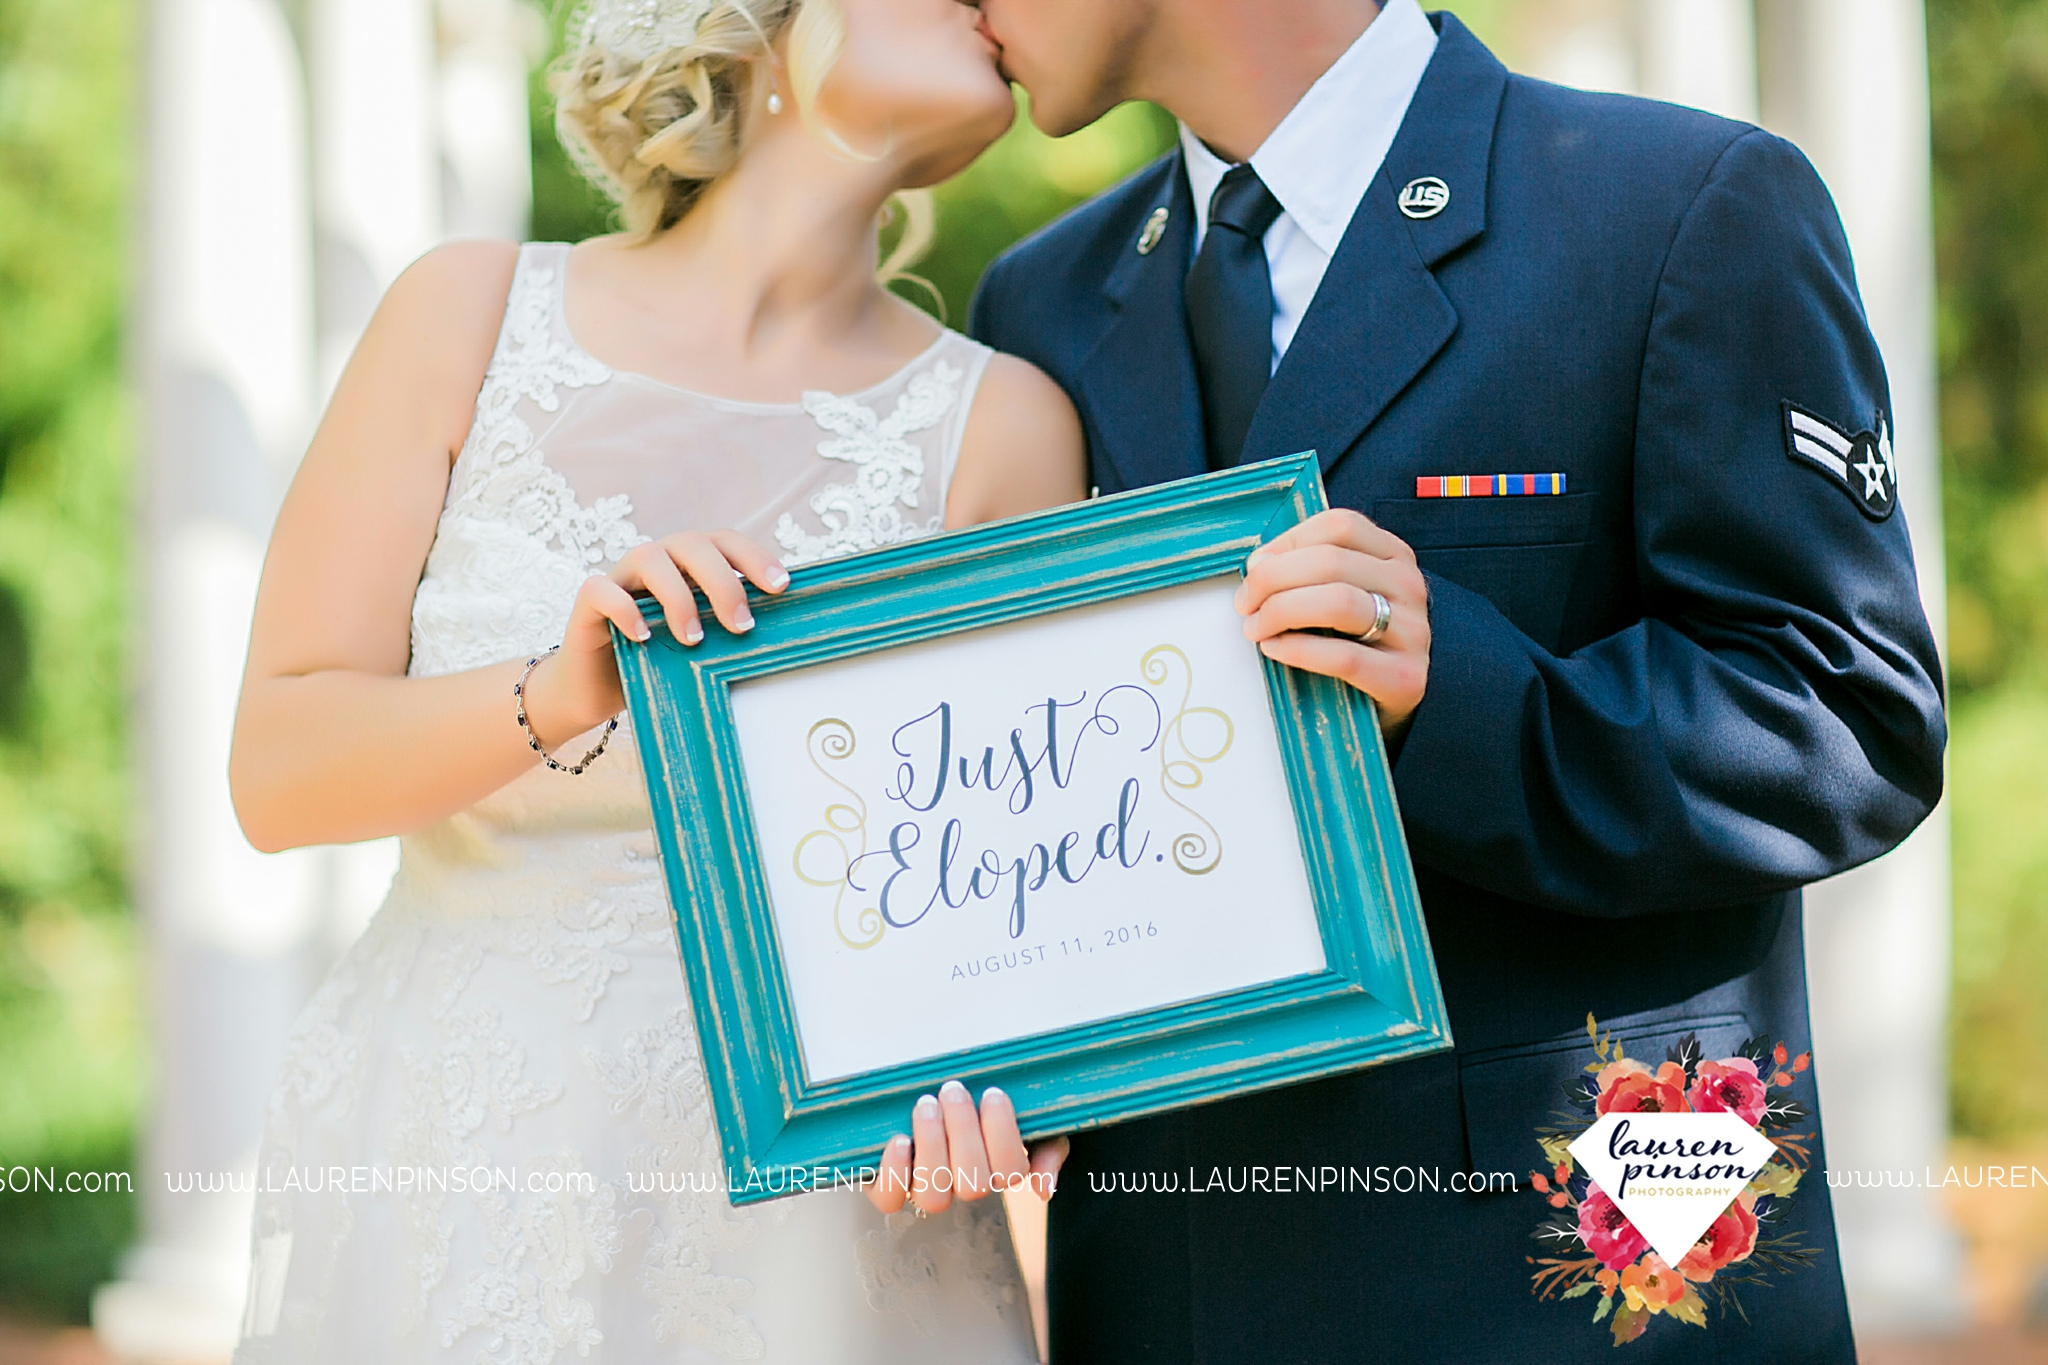 sheppard-afb-wichita-falls-texas-elopement-courthouse-wedding-photographer-justice-of-the-peace-judge-little-ceremony_3288.jpg